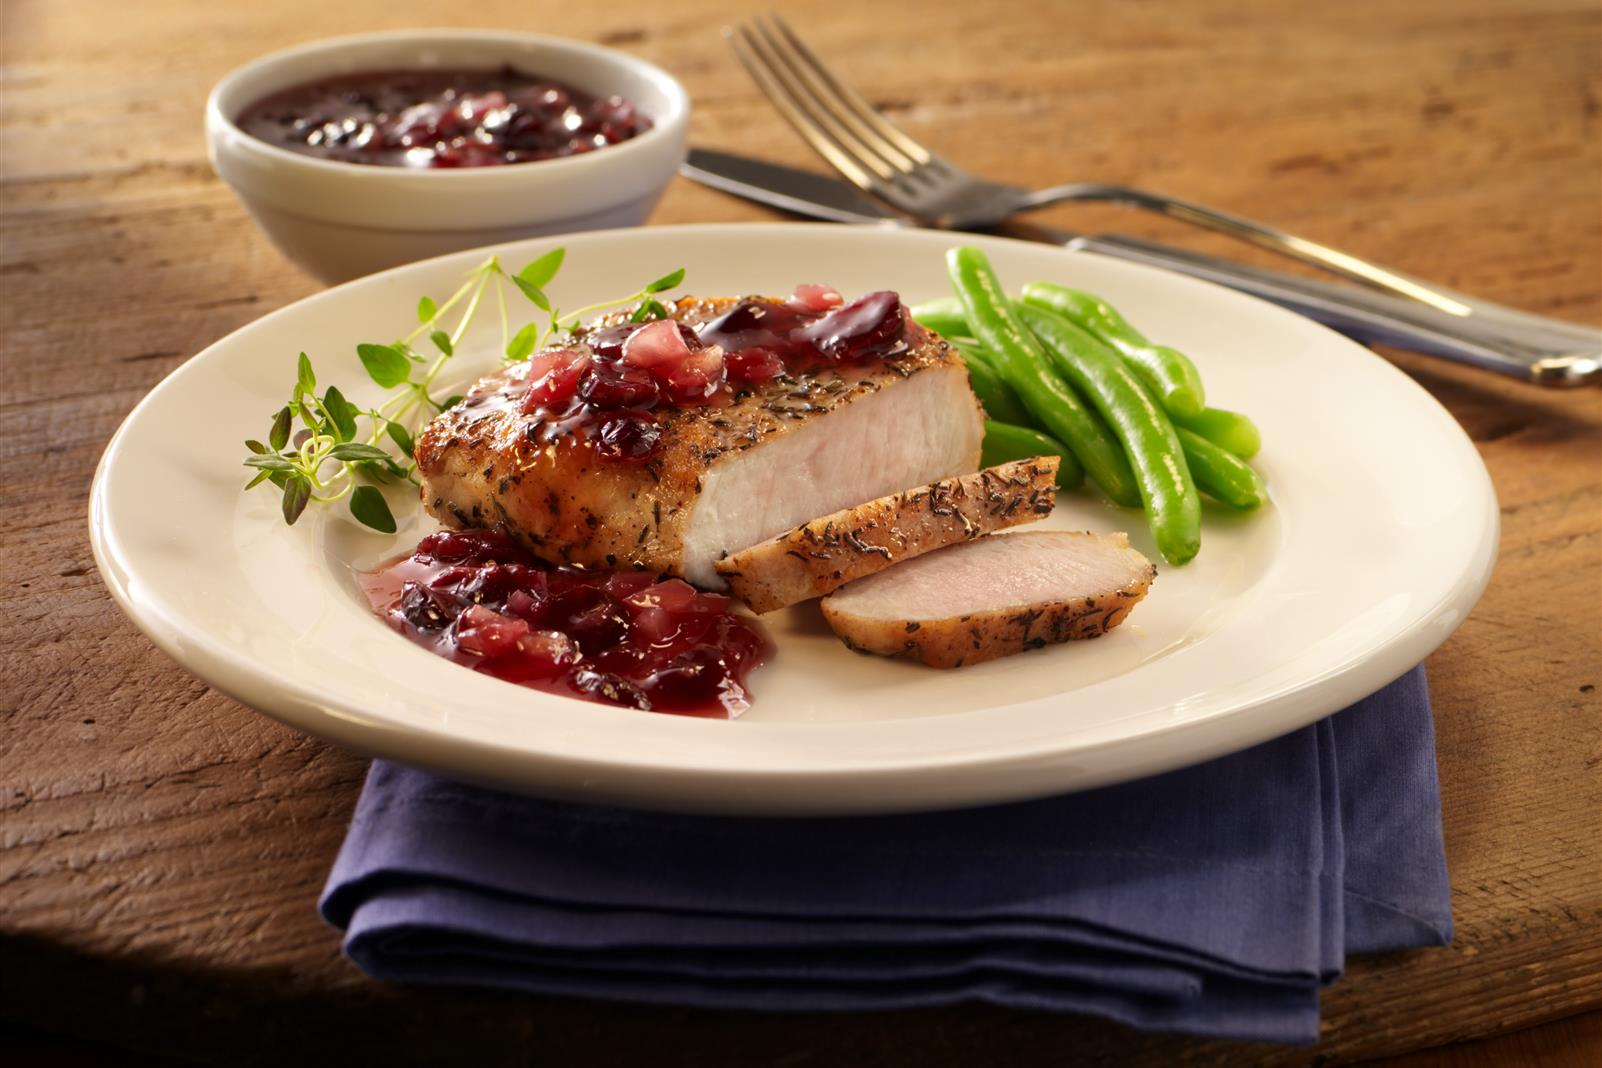 Pork Chops with Cranberry Blueberry Sauce